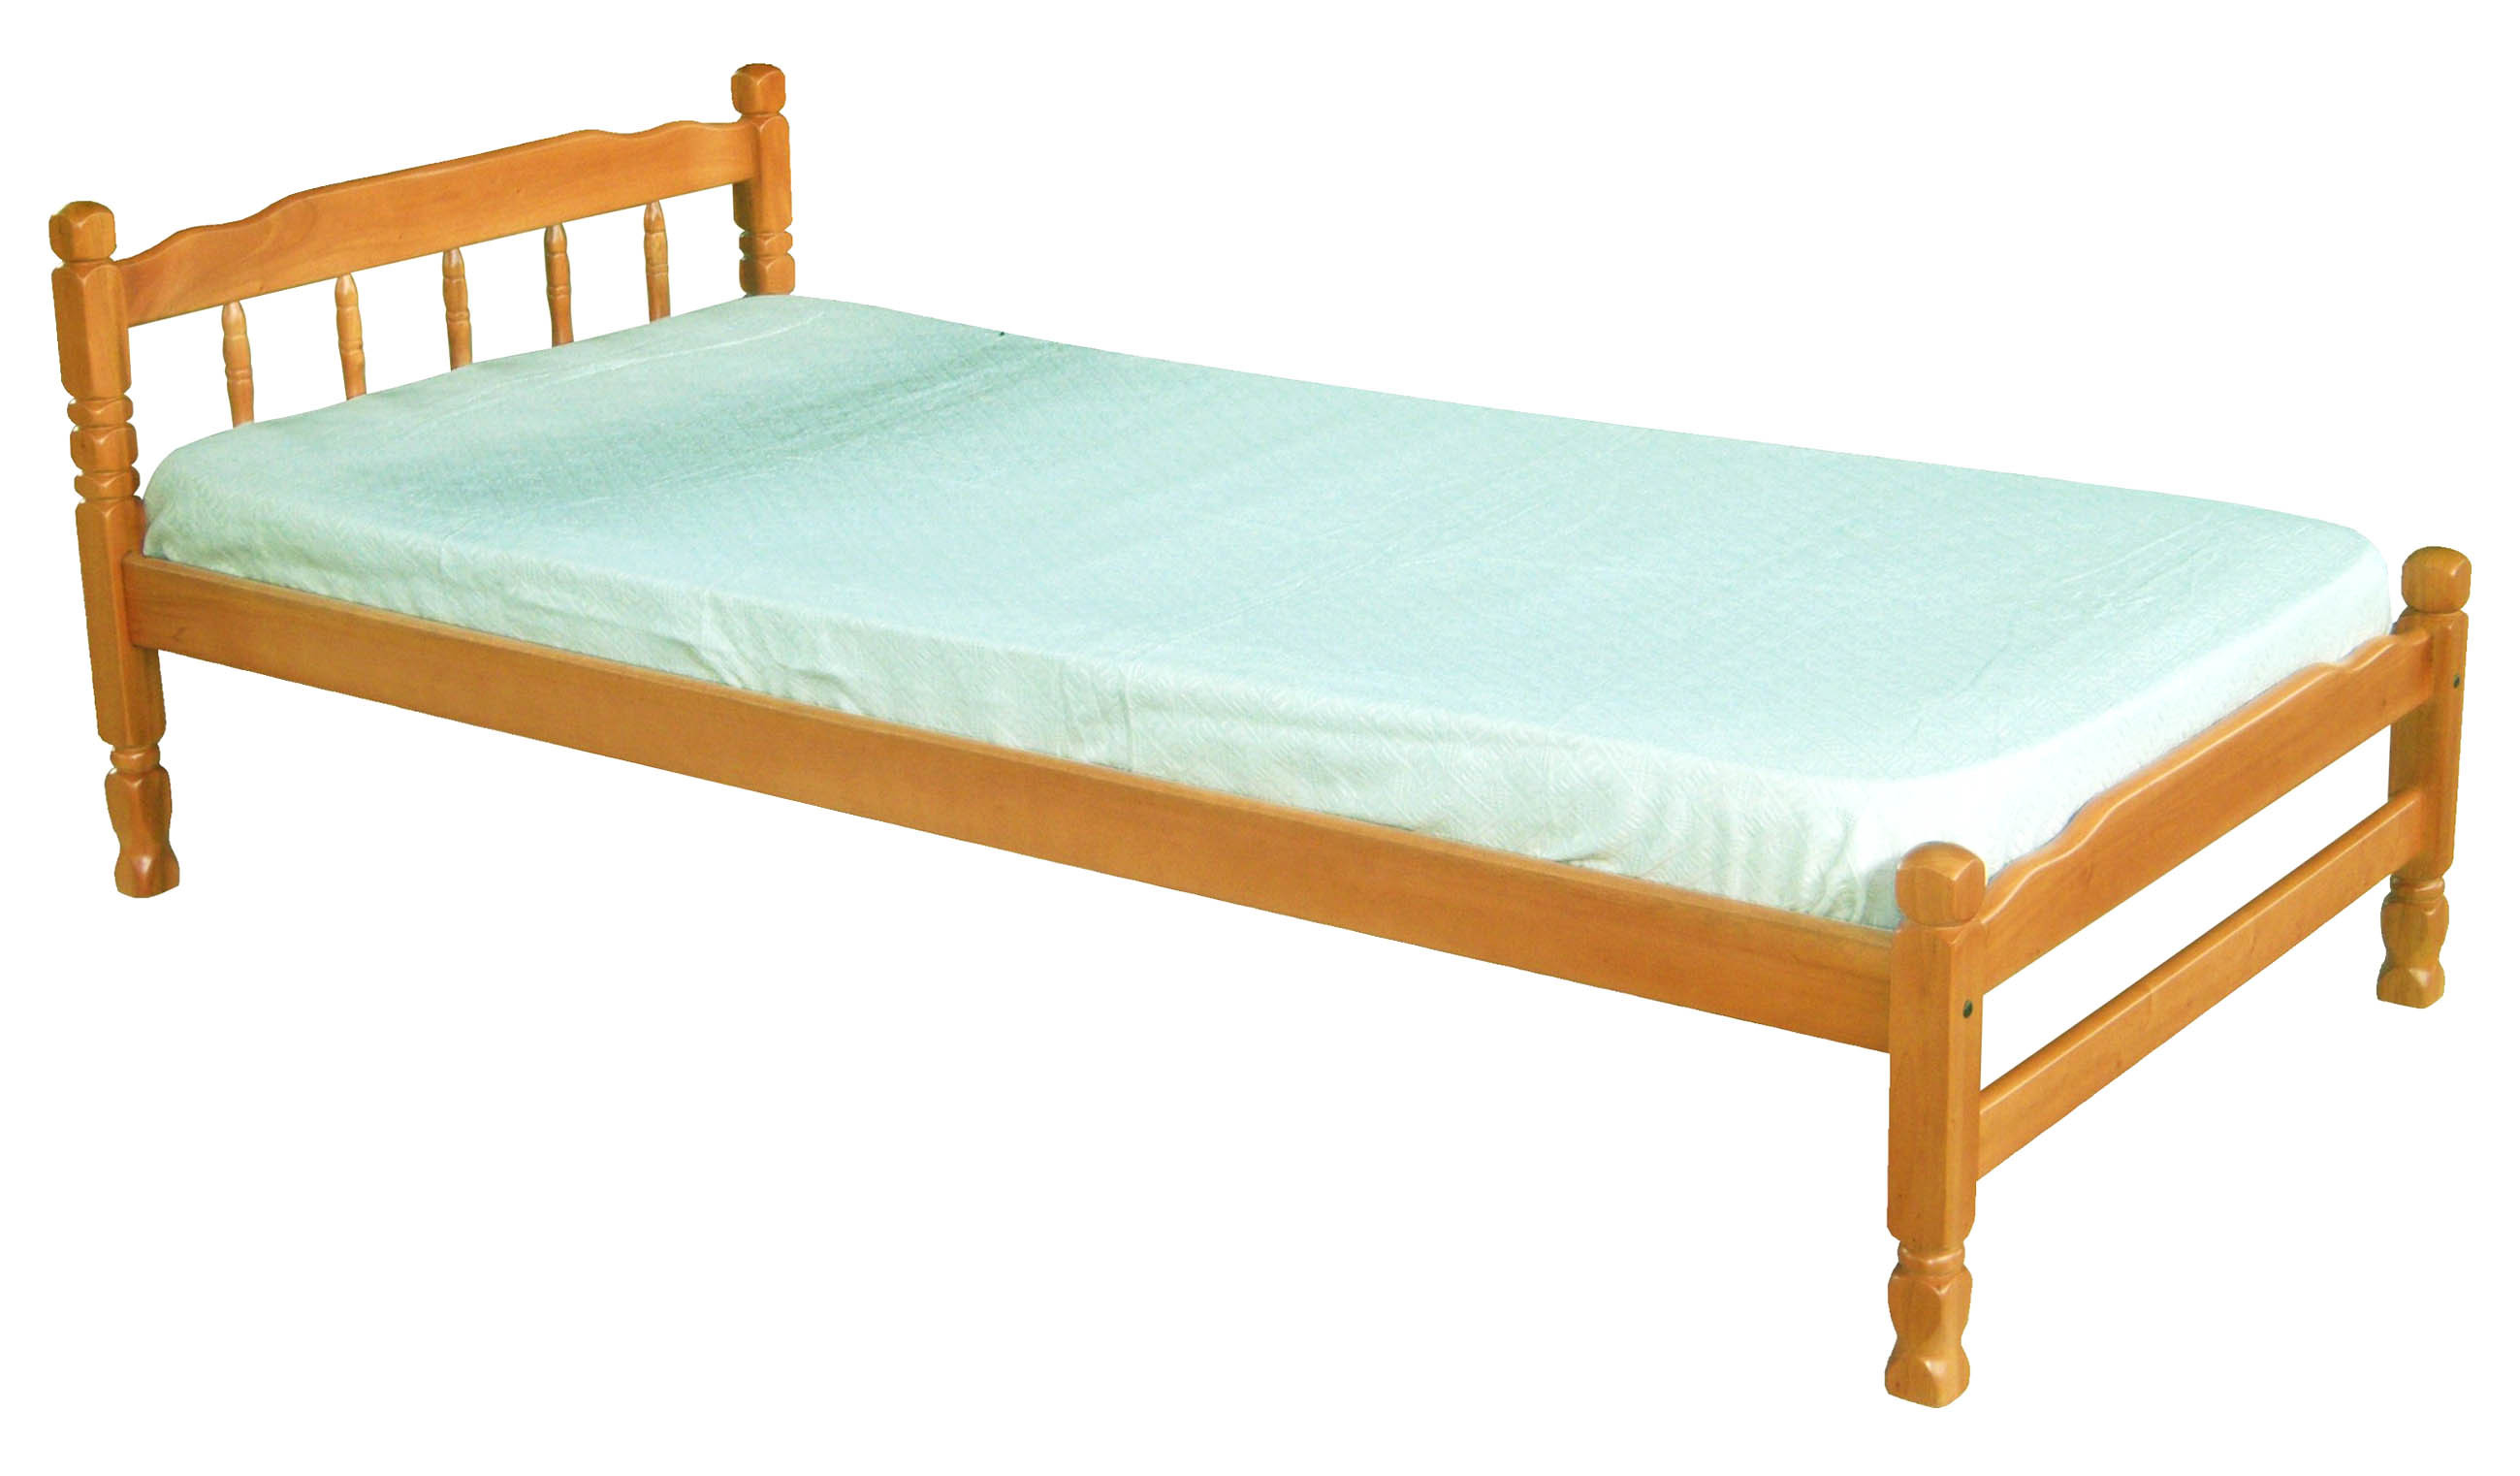 Single bed frame and mattress deals 3ft single 4ft6 or 5ft king size metal bed frame bedstead Bed and mattress deals